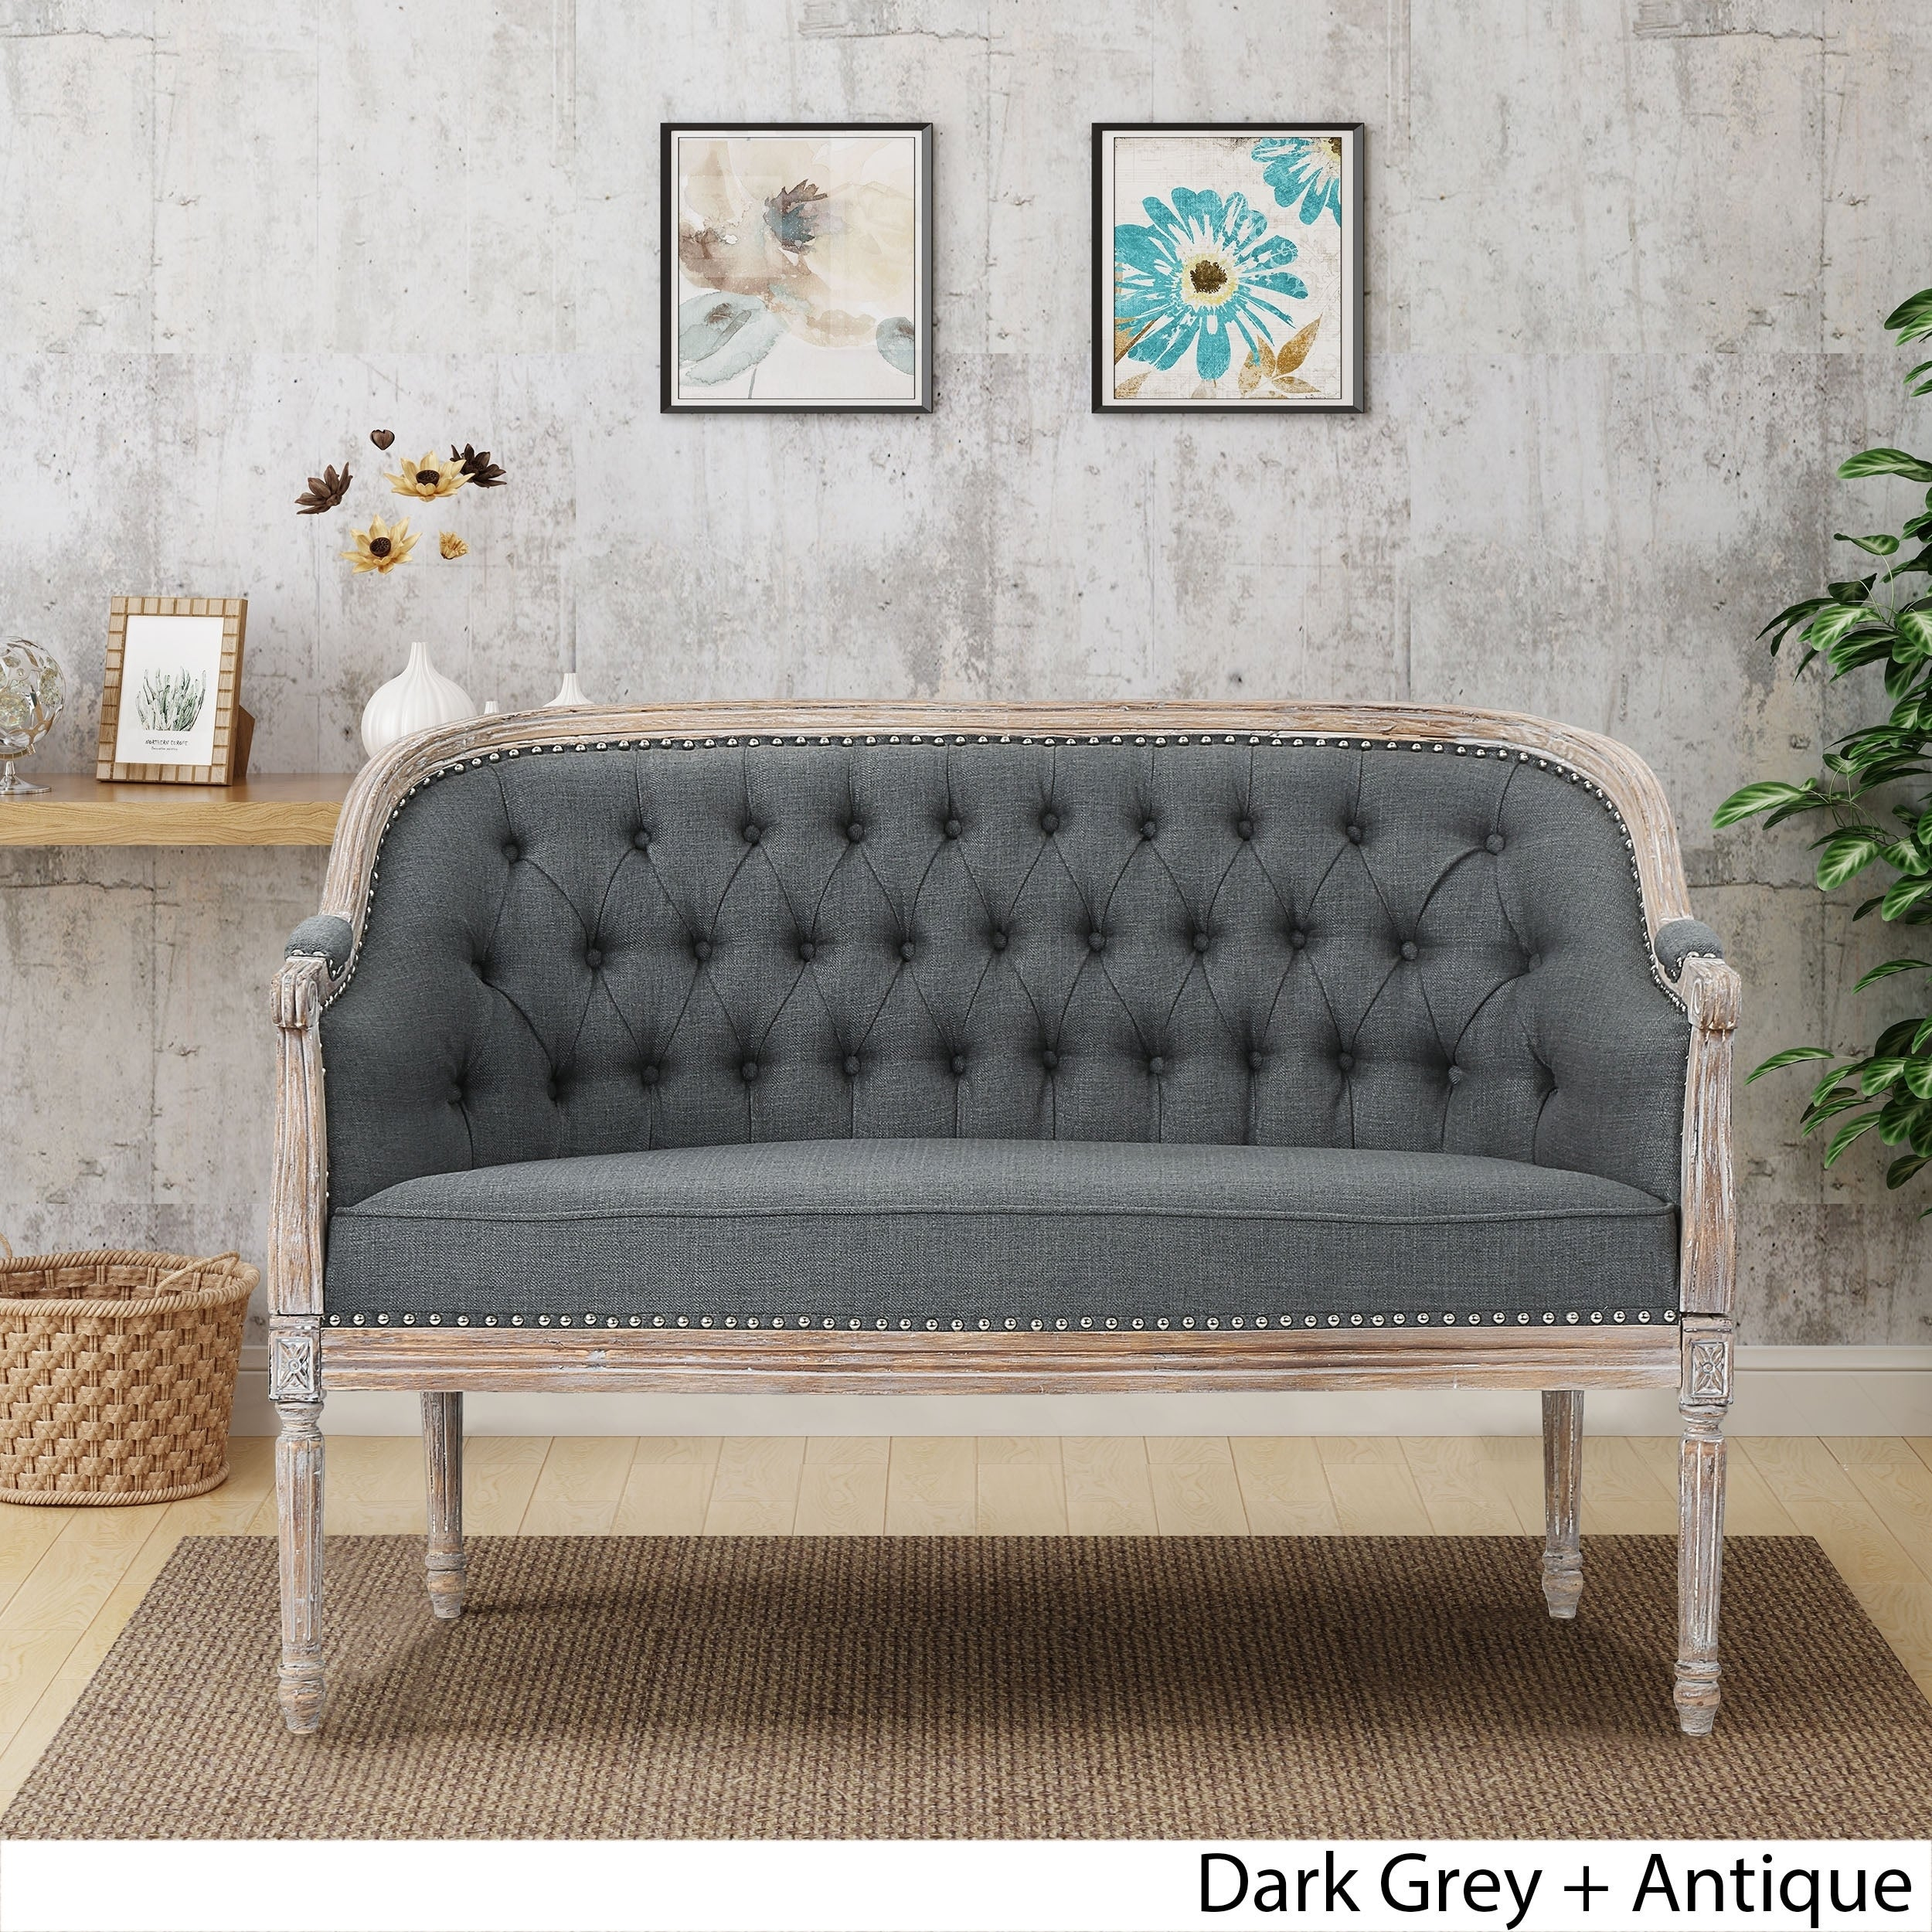 overstock by petite free mid garden sheena century knight christopher cushion single shipping modern fabric product home loveseat today